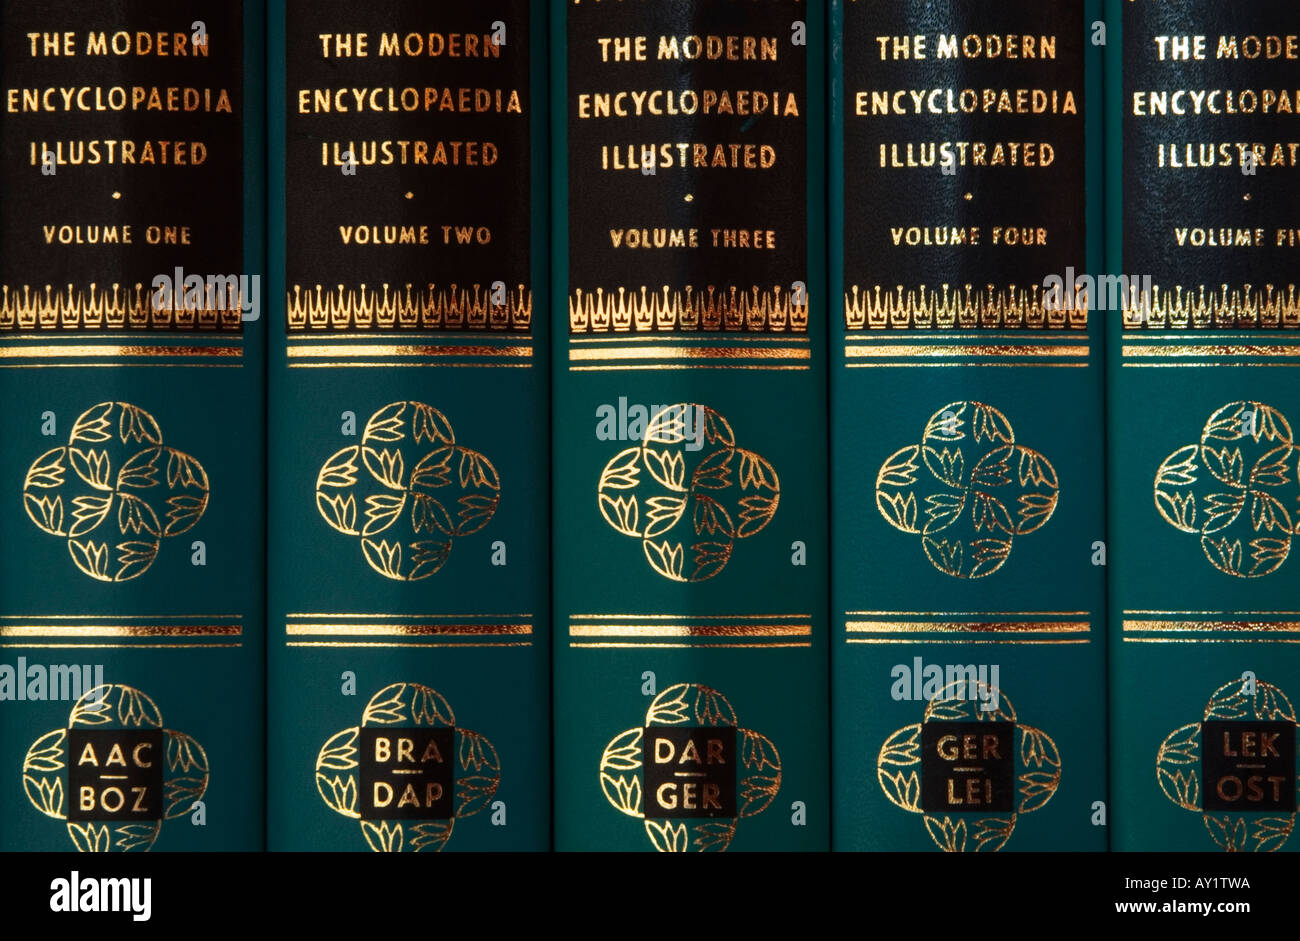 five encyclopaedias - Stock Image